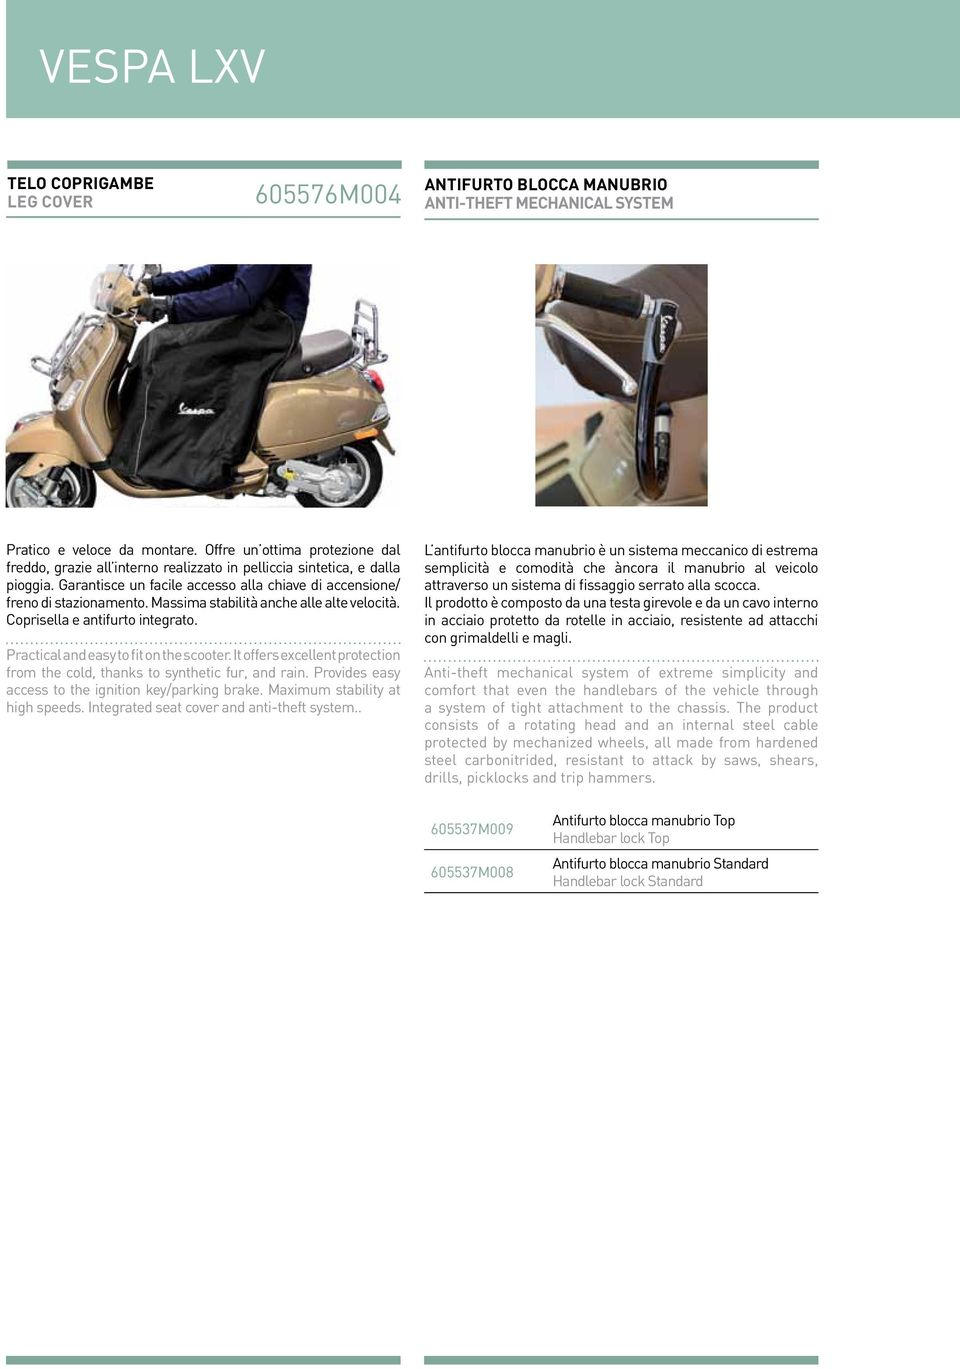 Massima stabilità anche alle alte velocità. Coprisella e antifurto integrato. Practical and easy to fit on the scooter. It offers excellent protection from the cold, thanks to synthetic fur, and rain.